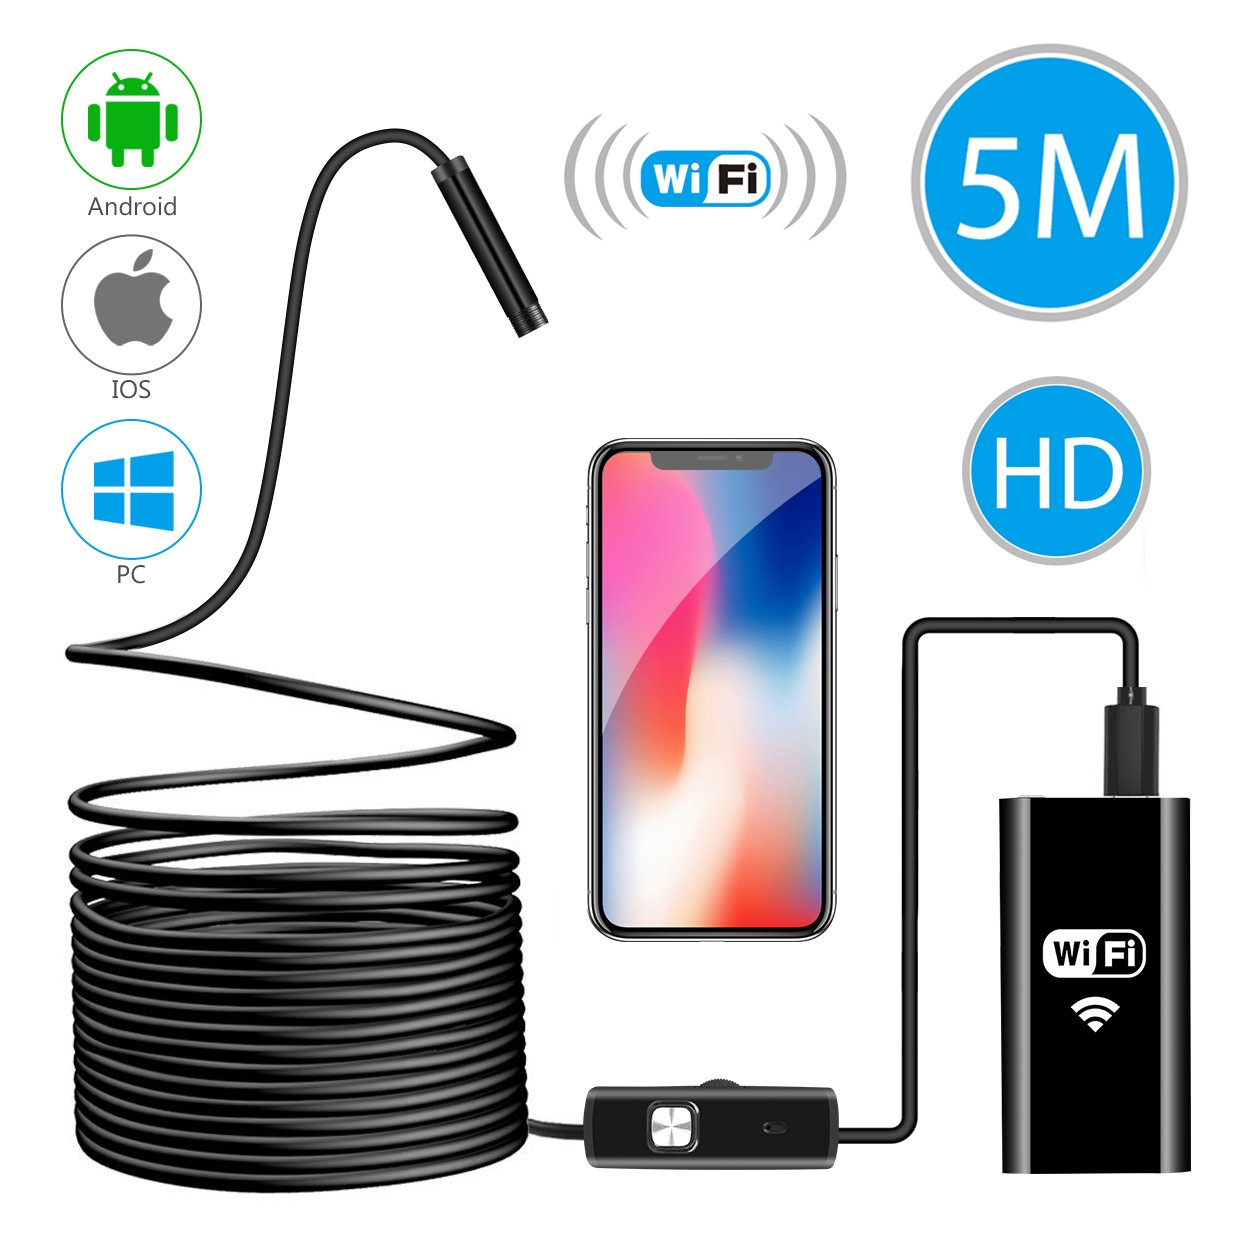 Wireless Endoscope, WiFi Borescope Inspection Camera 2 in 1 2.0 Megapixels HD Waterproof Snake Camera Pipe Drain with 8 Adjustable Led for Android & IOS Smartphone IPhone Samsung Tablet-16.4 ft (5M) Hydream